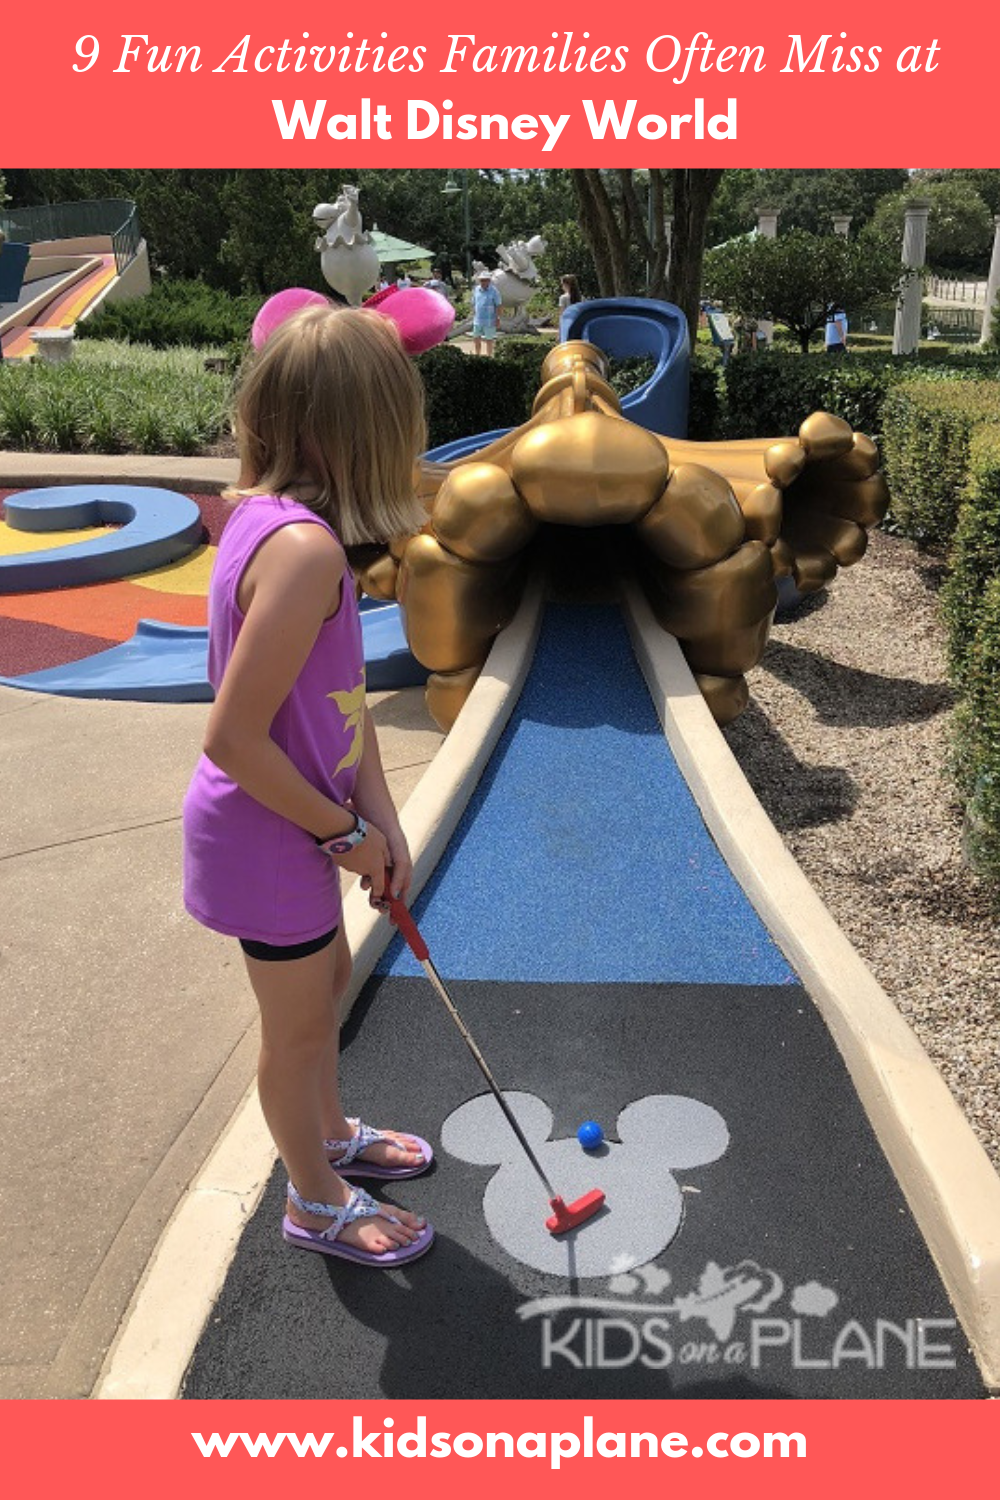 Overlooked Experiences and Activities Families Should NOT MISS at Walt Disney World Florida